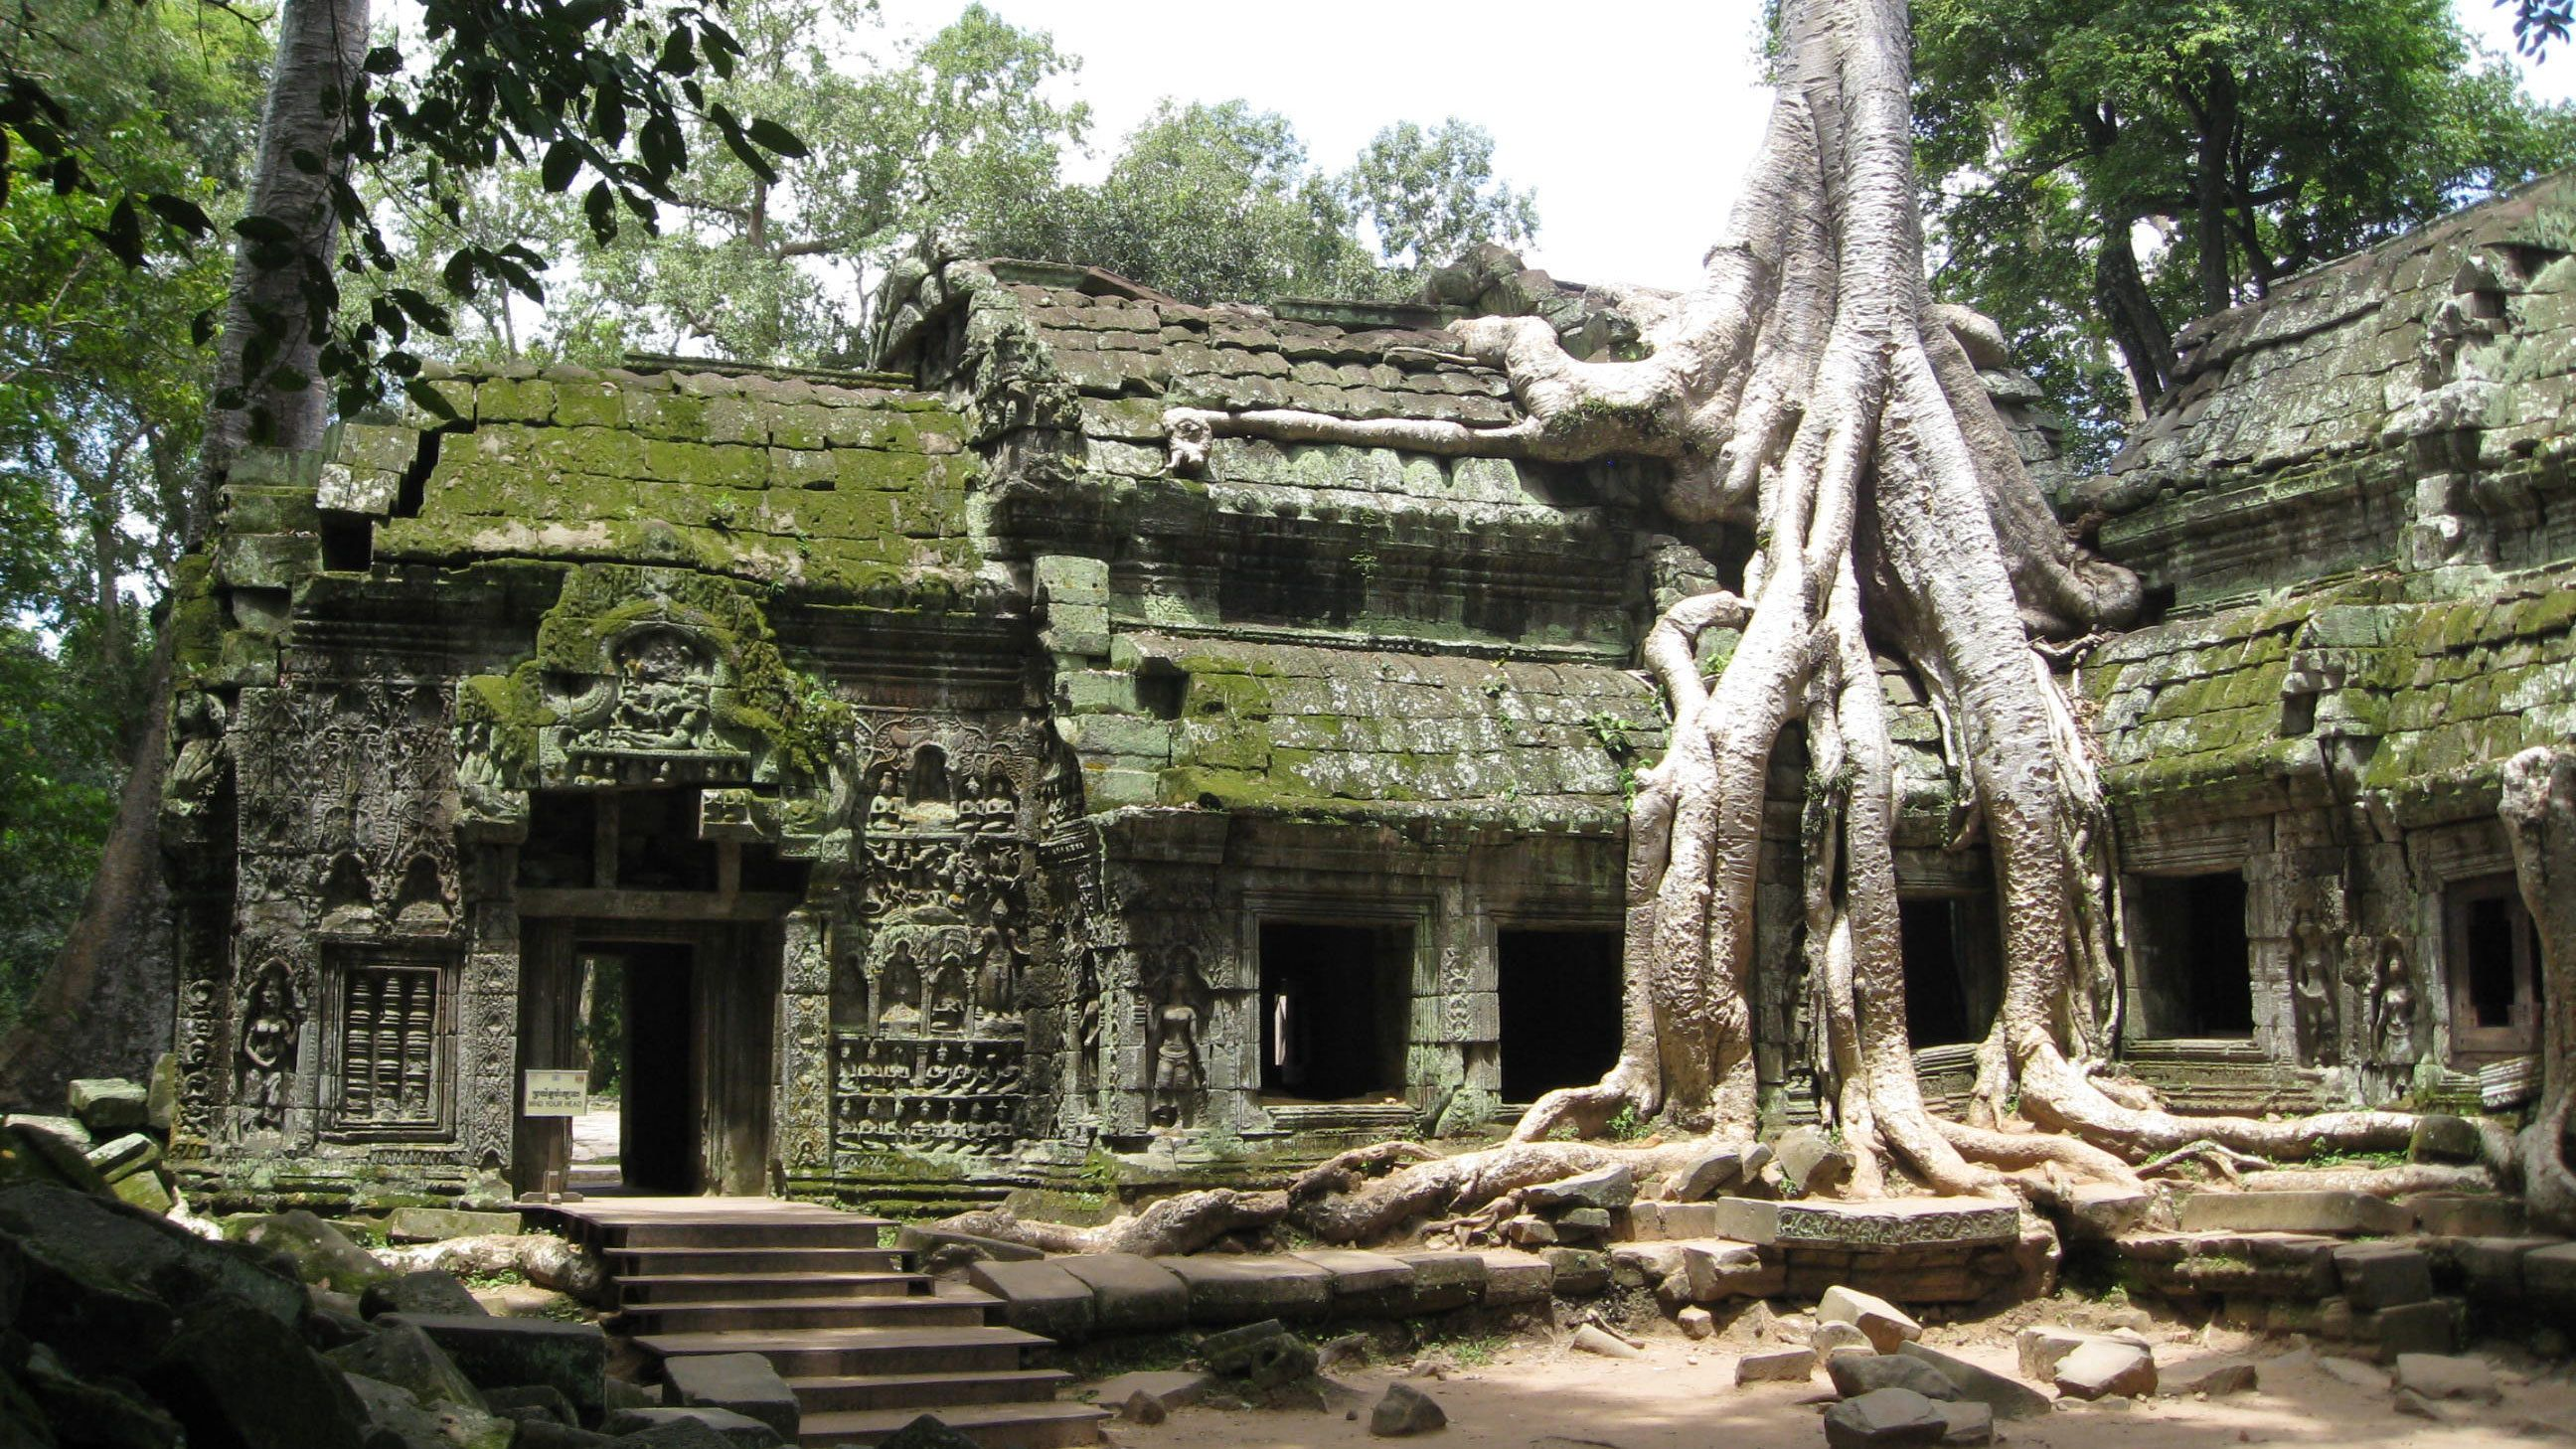 View of an ancient temple in Siem Reap